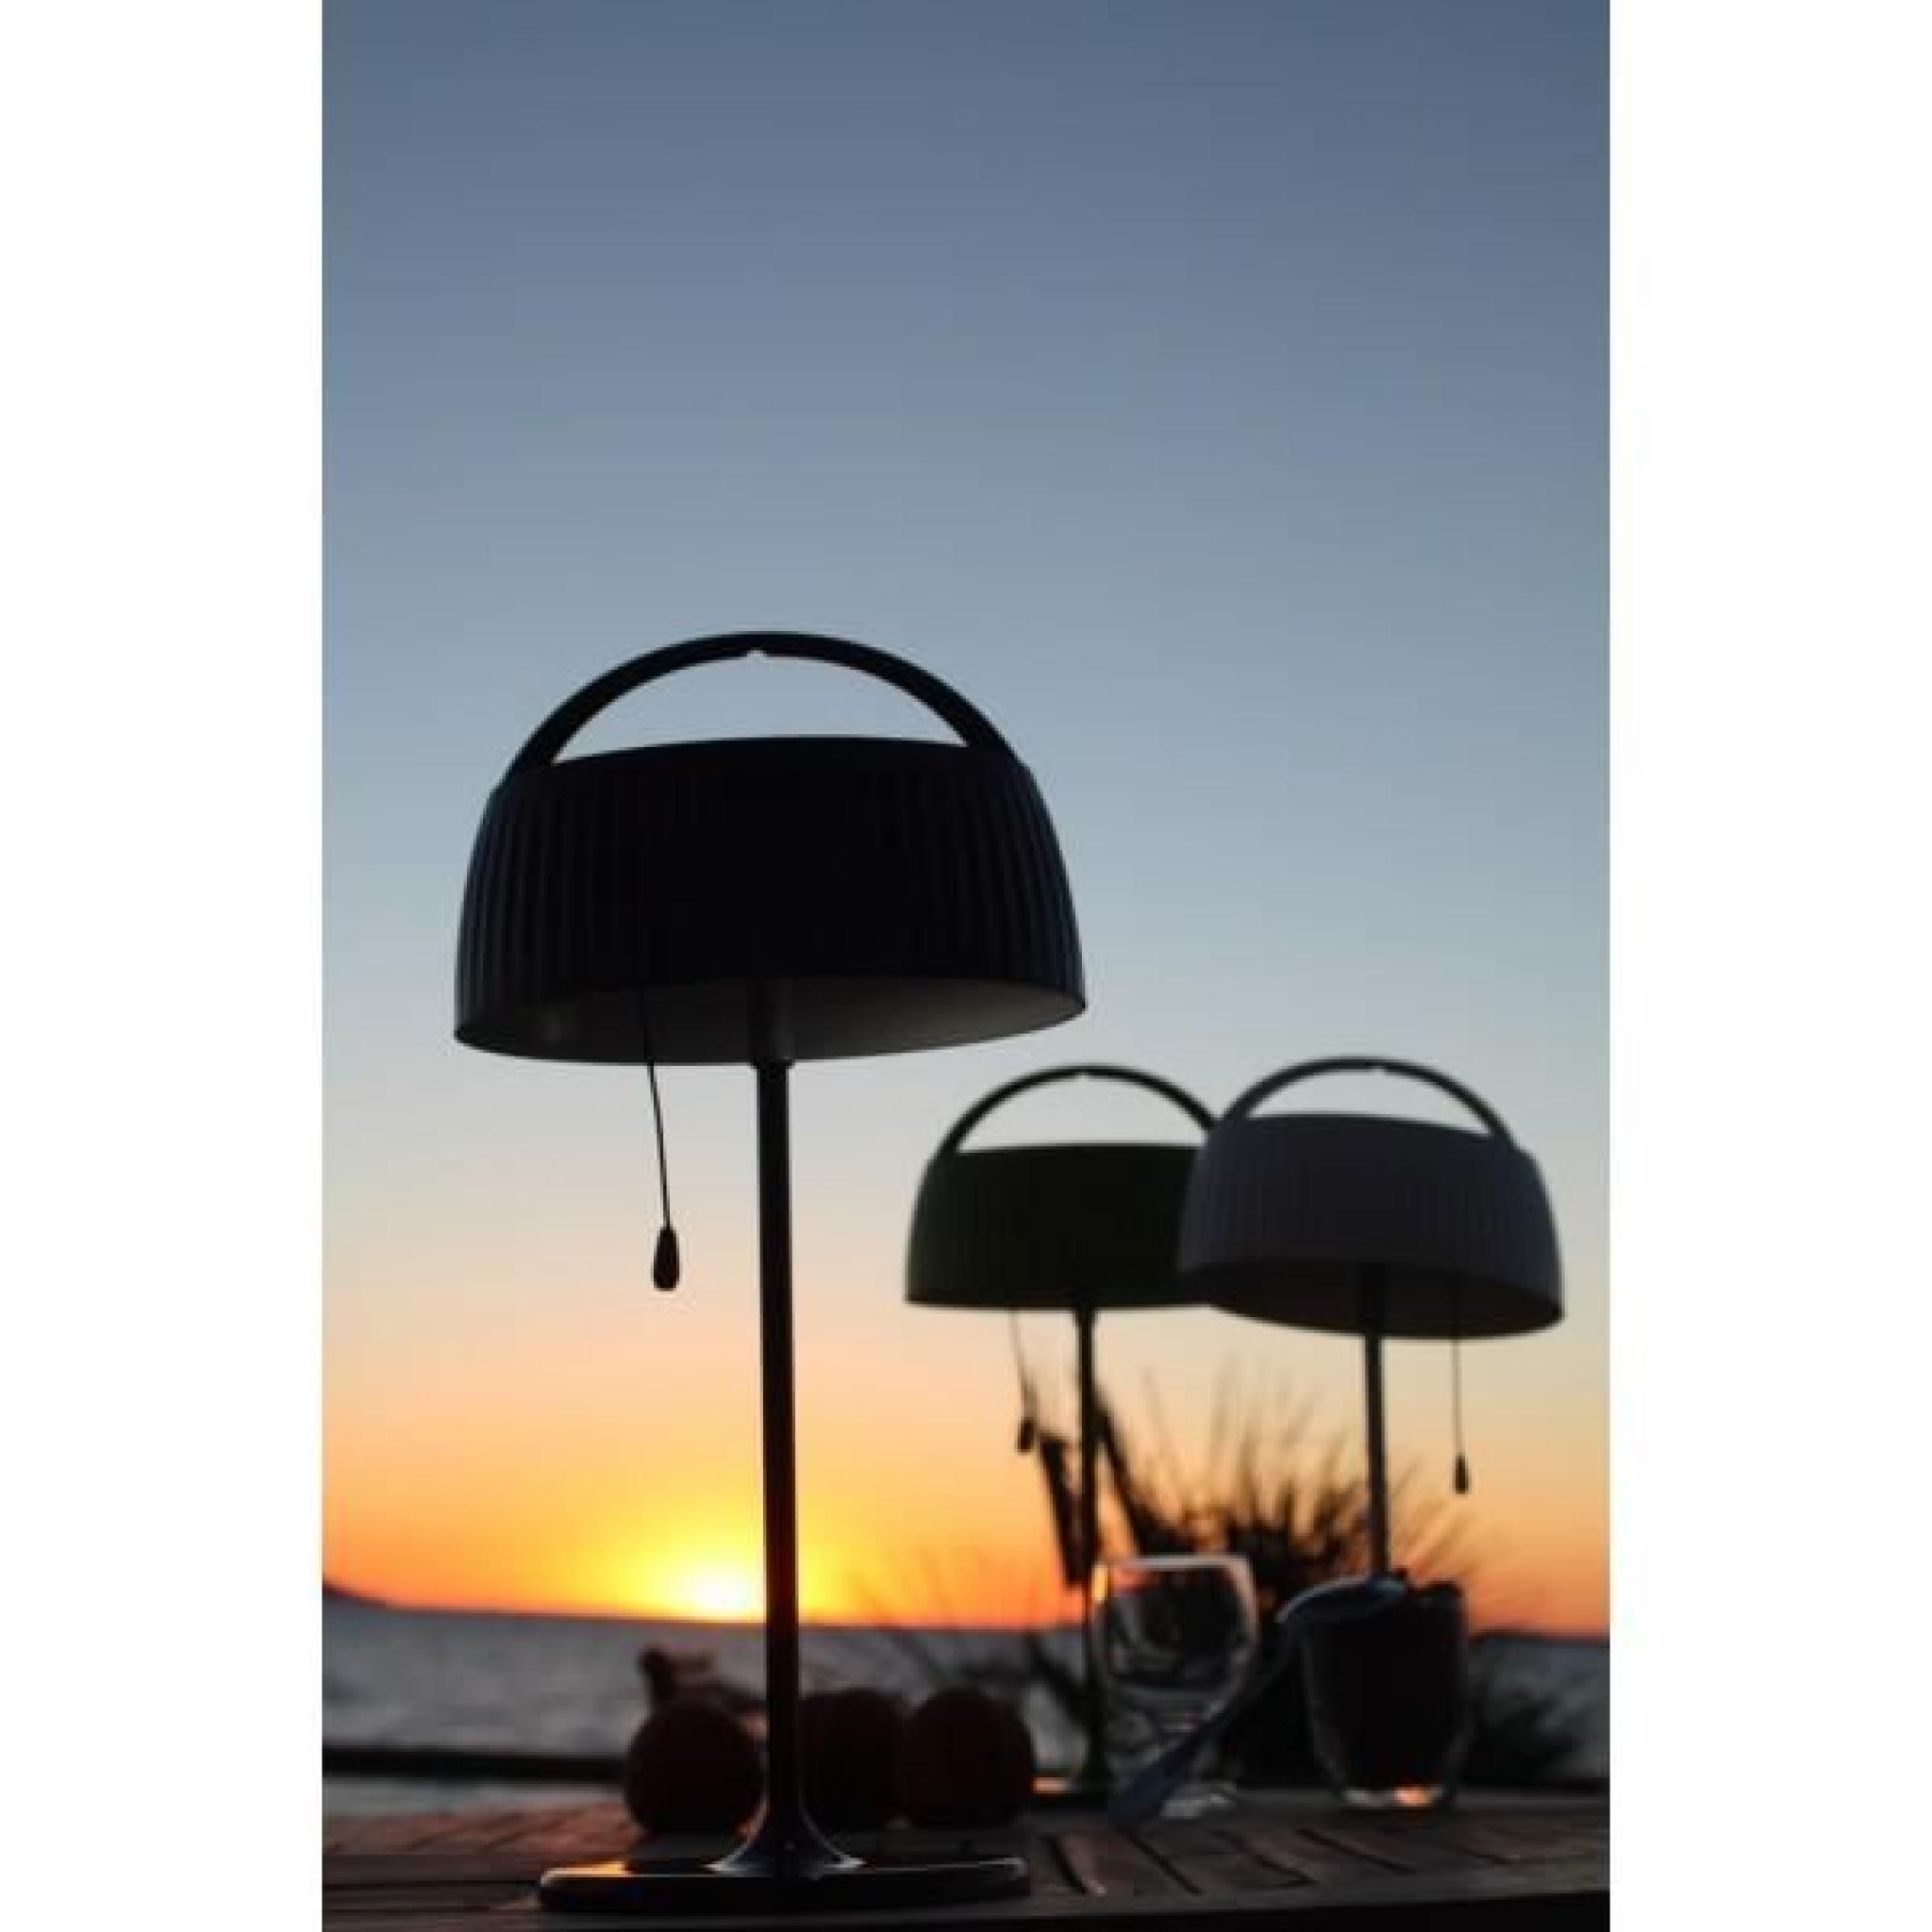 lampe solaire r tro pop blanche de table achat vente lampe a poser pas cher couleur et. Black Bedroom Furniture Sets. Home Design Ideas